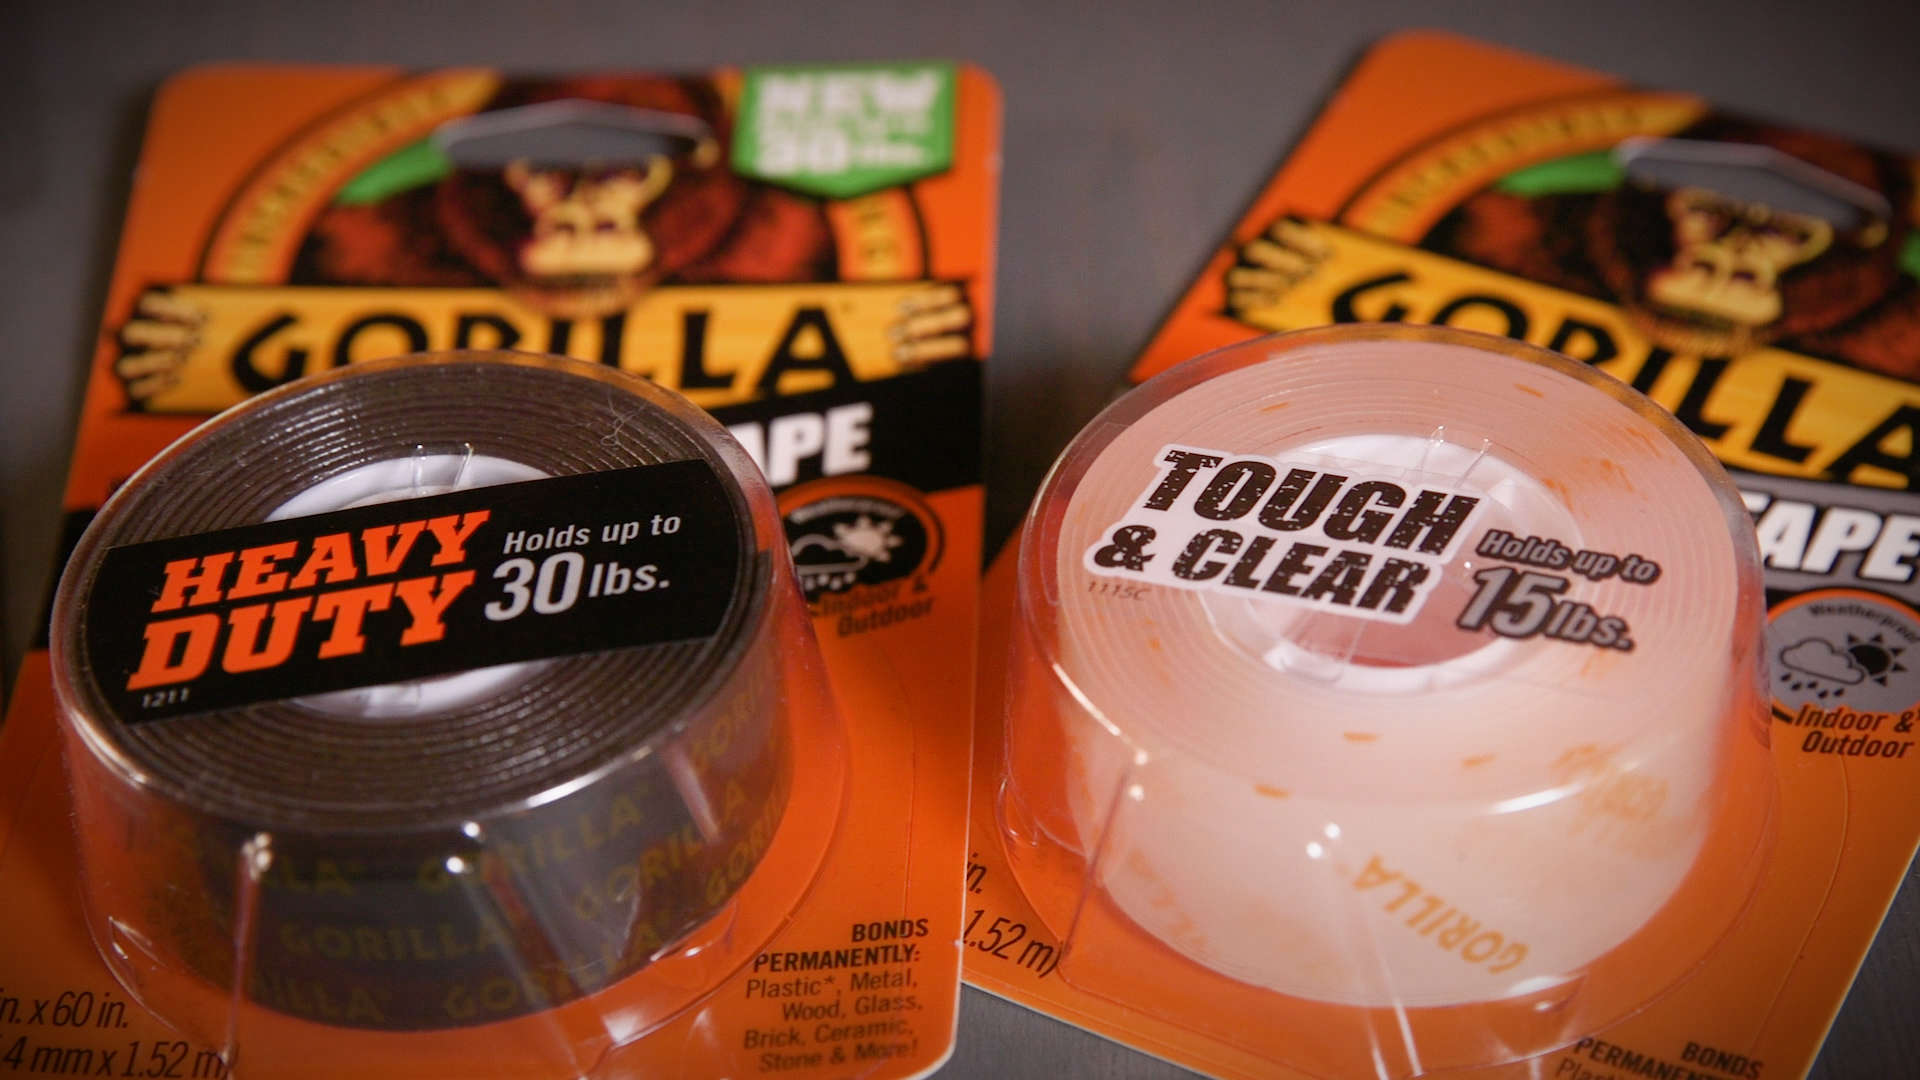 Gorilla Tough Amp Clear Mounting Tape Gorilla Glue